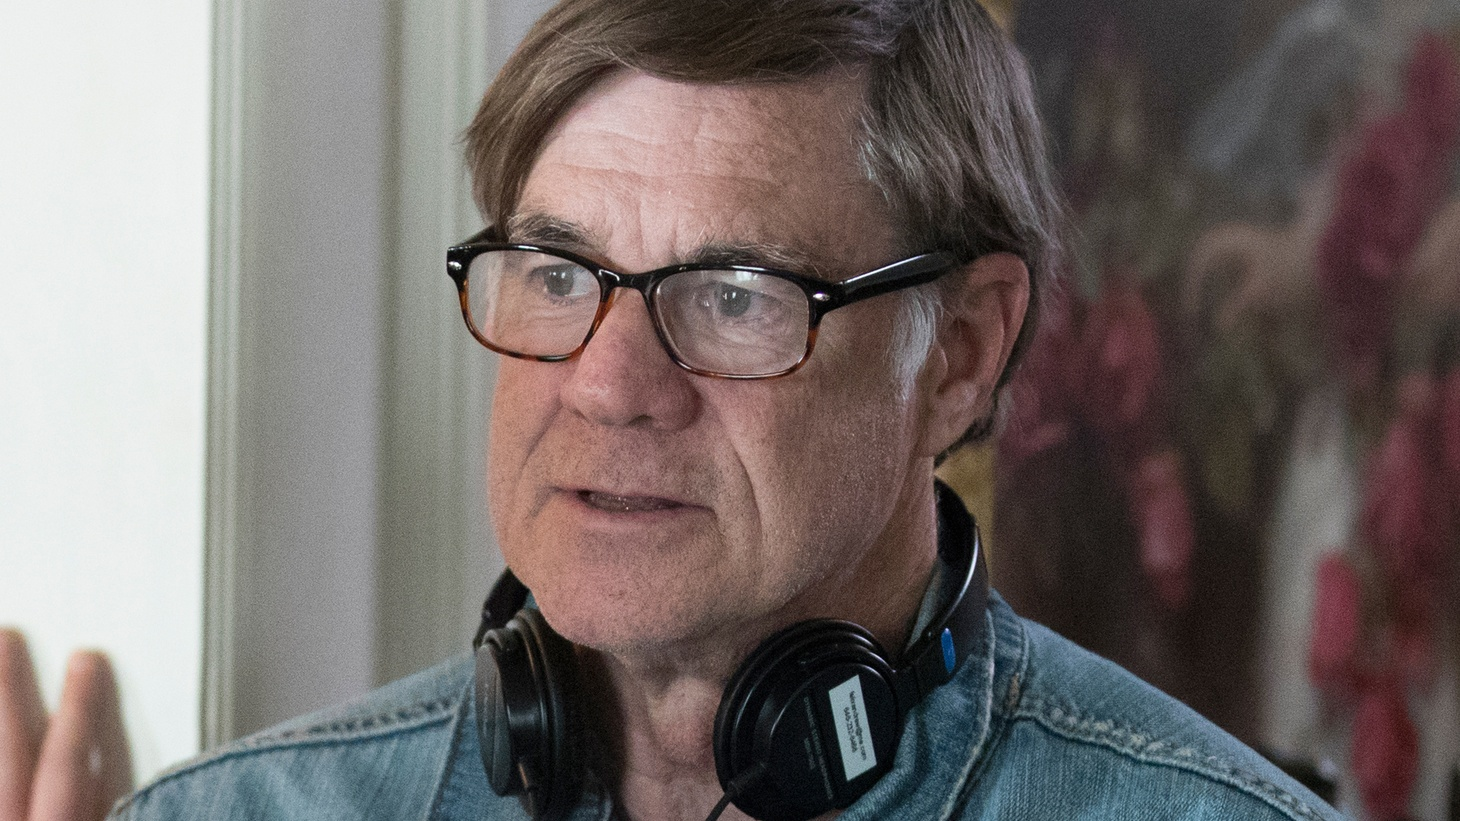 Director Gus Van Sant discusses his meticulous comedic casting in 'Don't Worry, He Won't Get Far On Foot.'